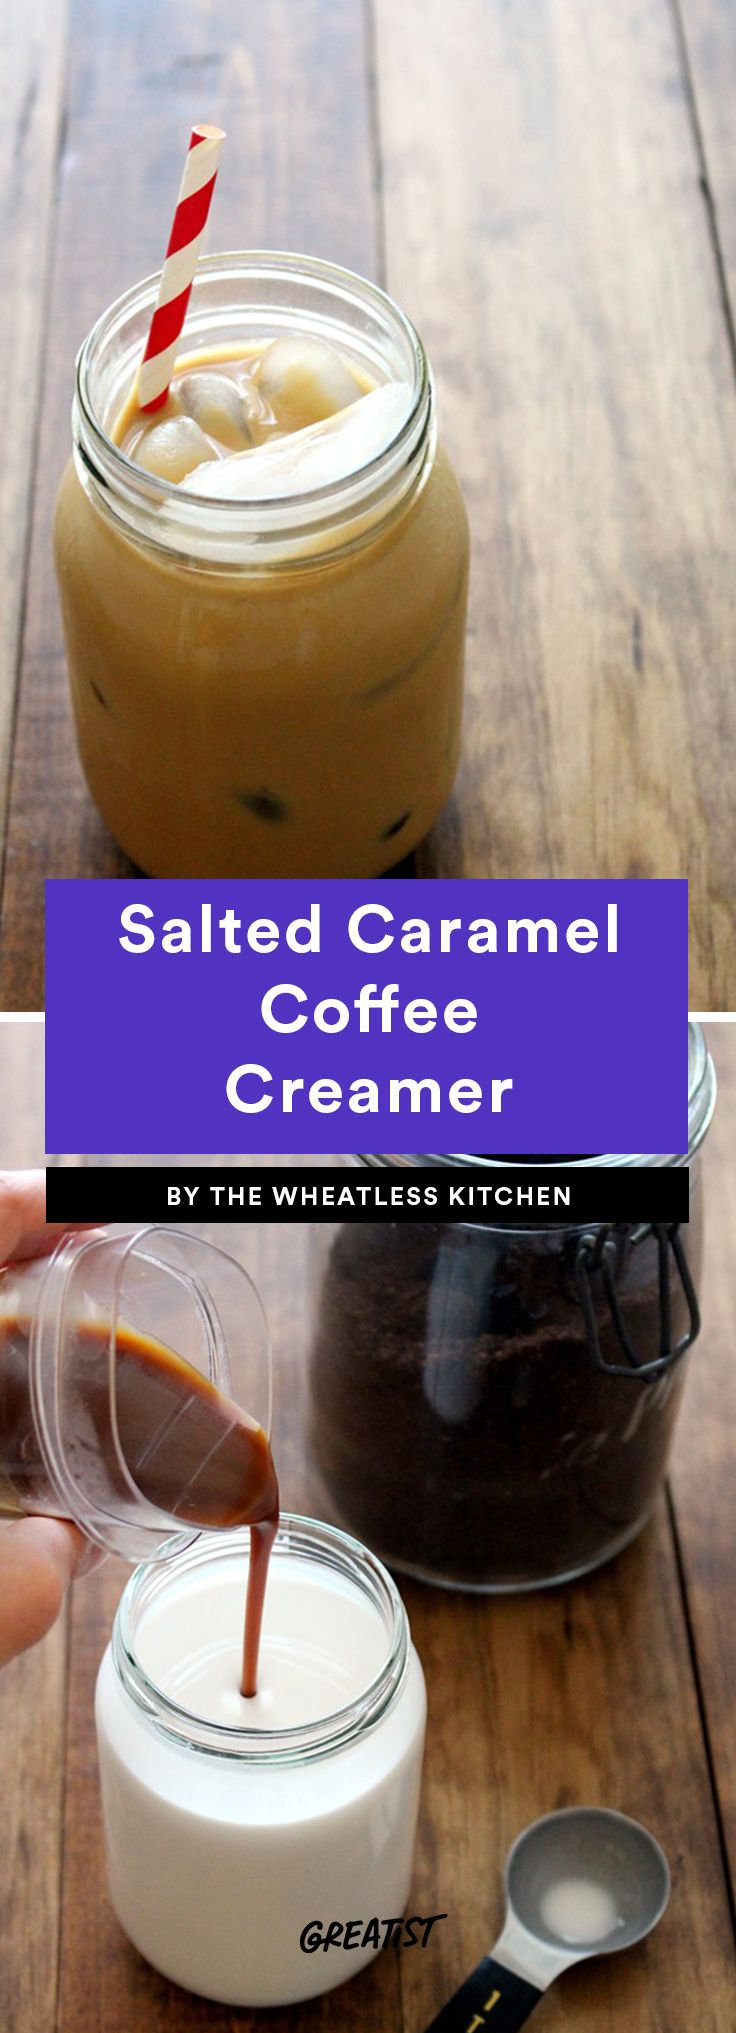 7 homemade coffee creamers that arent loaded with sugar